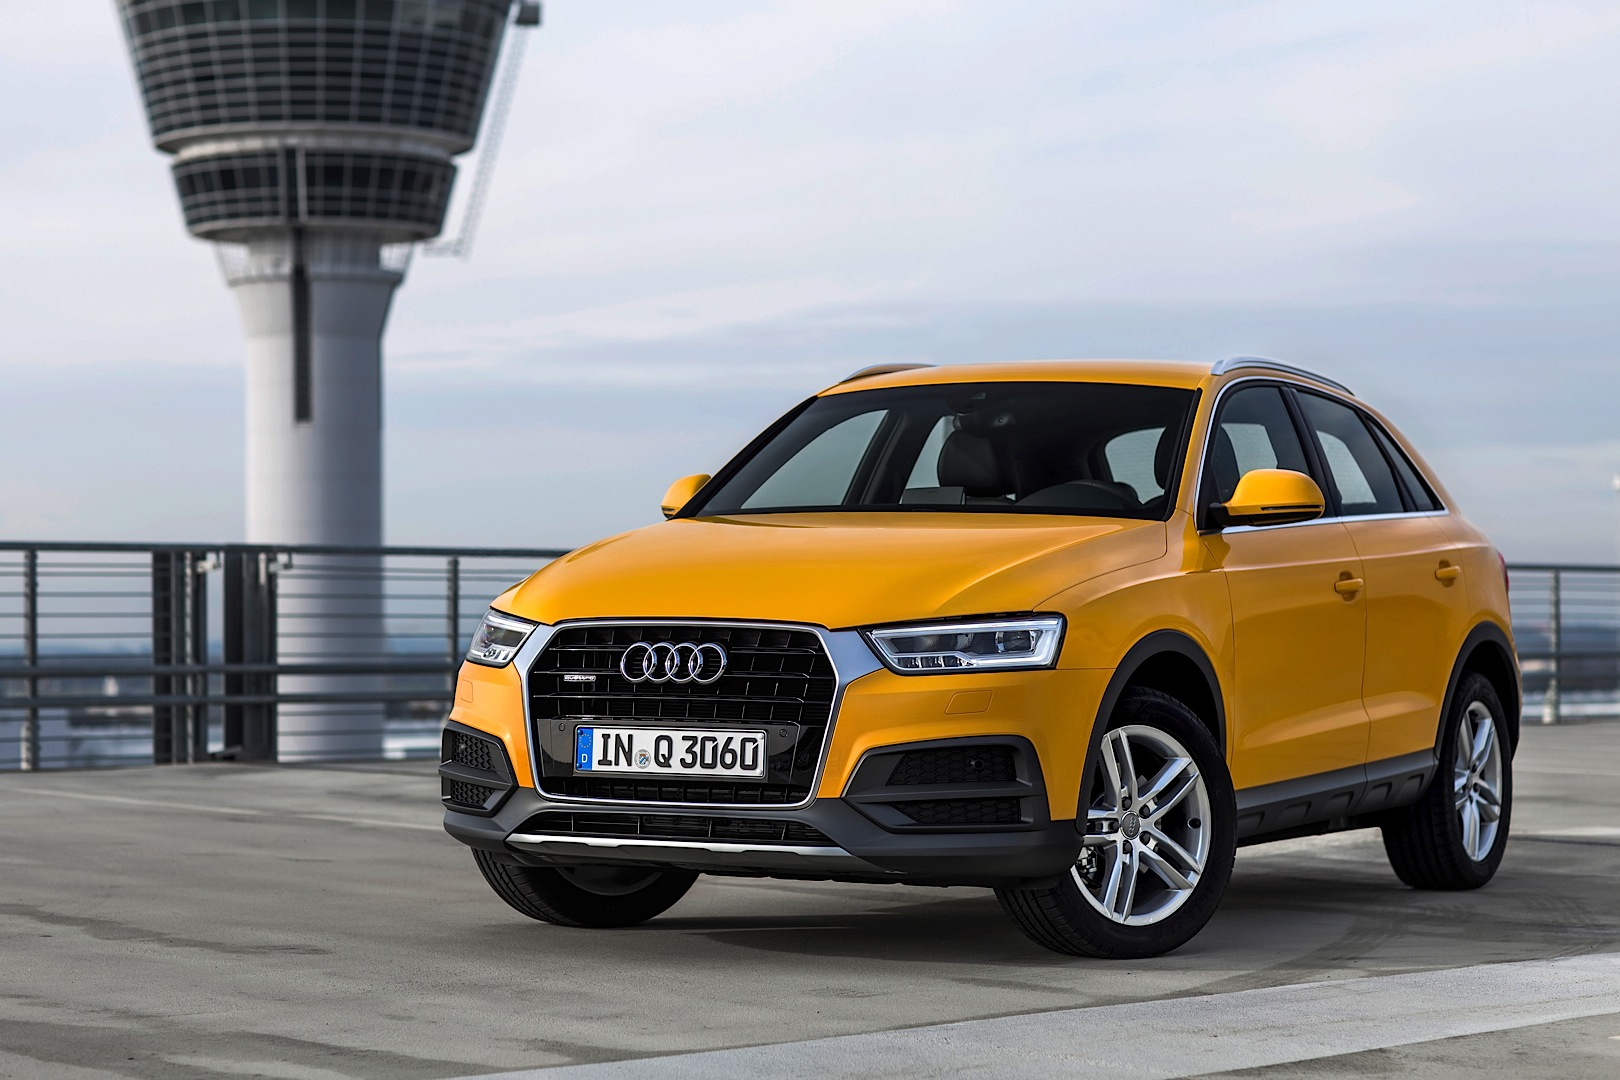 Audi Q3 Colors U003eu003e Audi Shares New 2015 Q3 And Rs Q3 Photos Fresh Colors